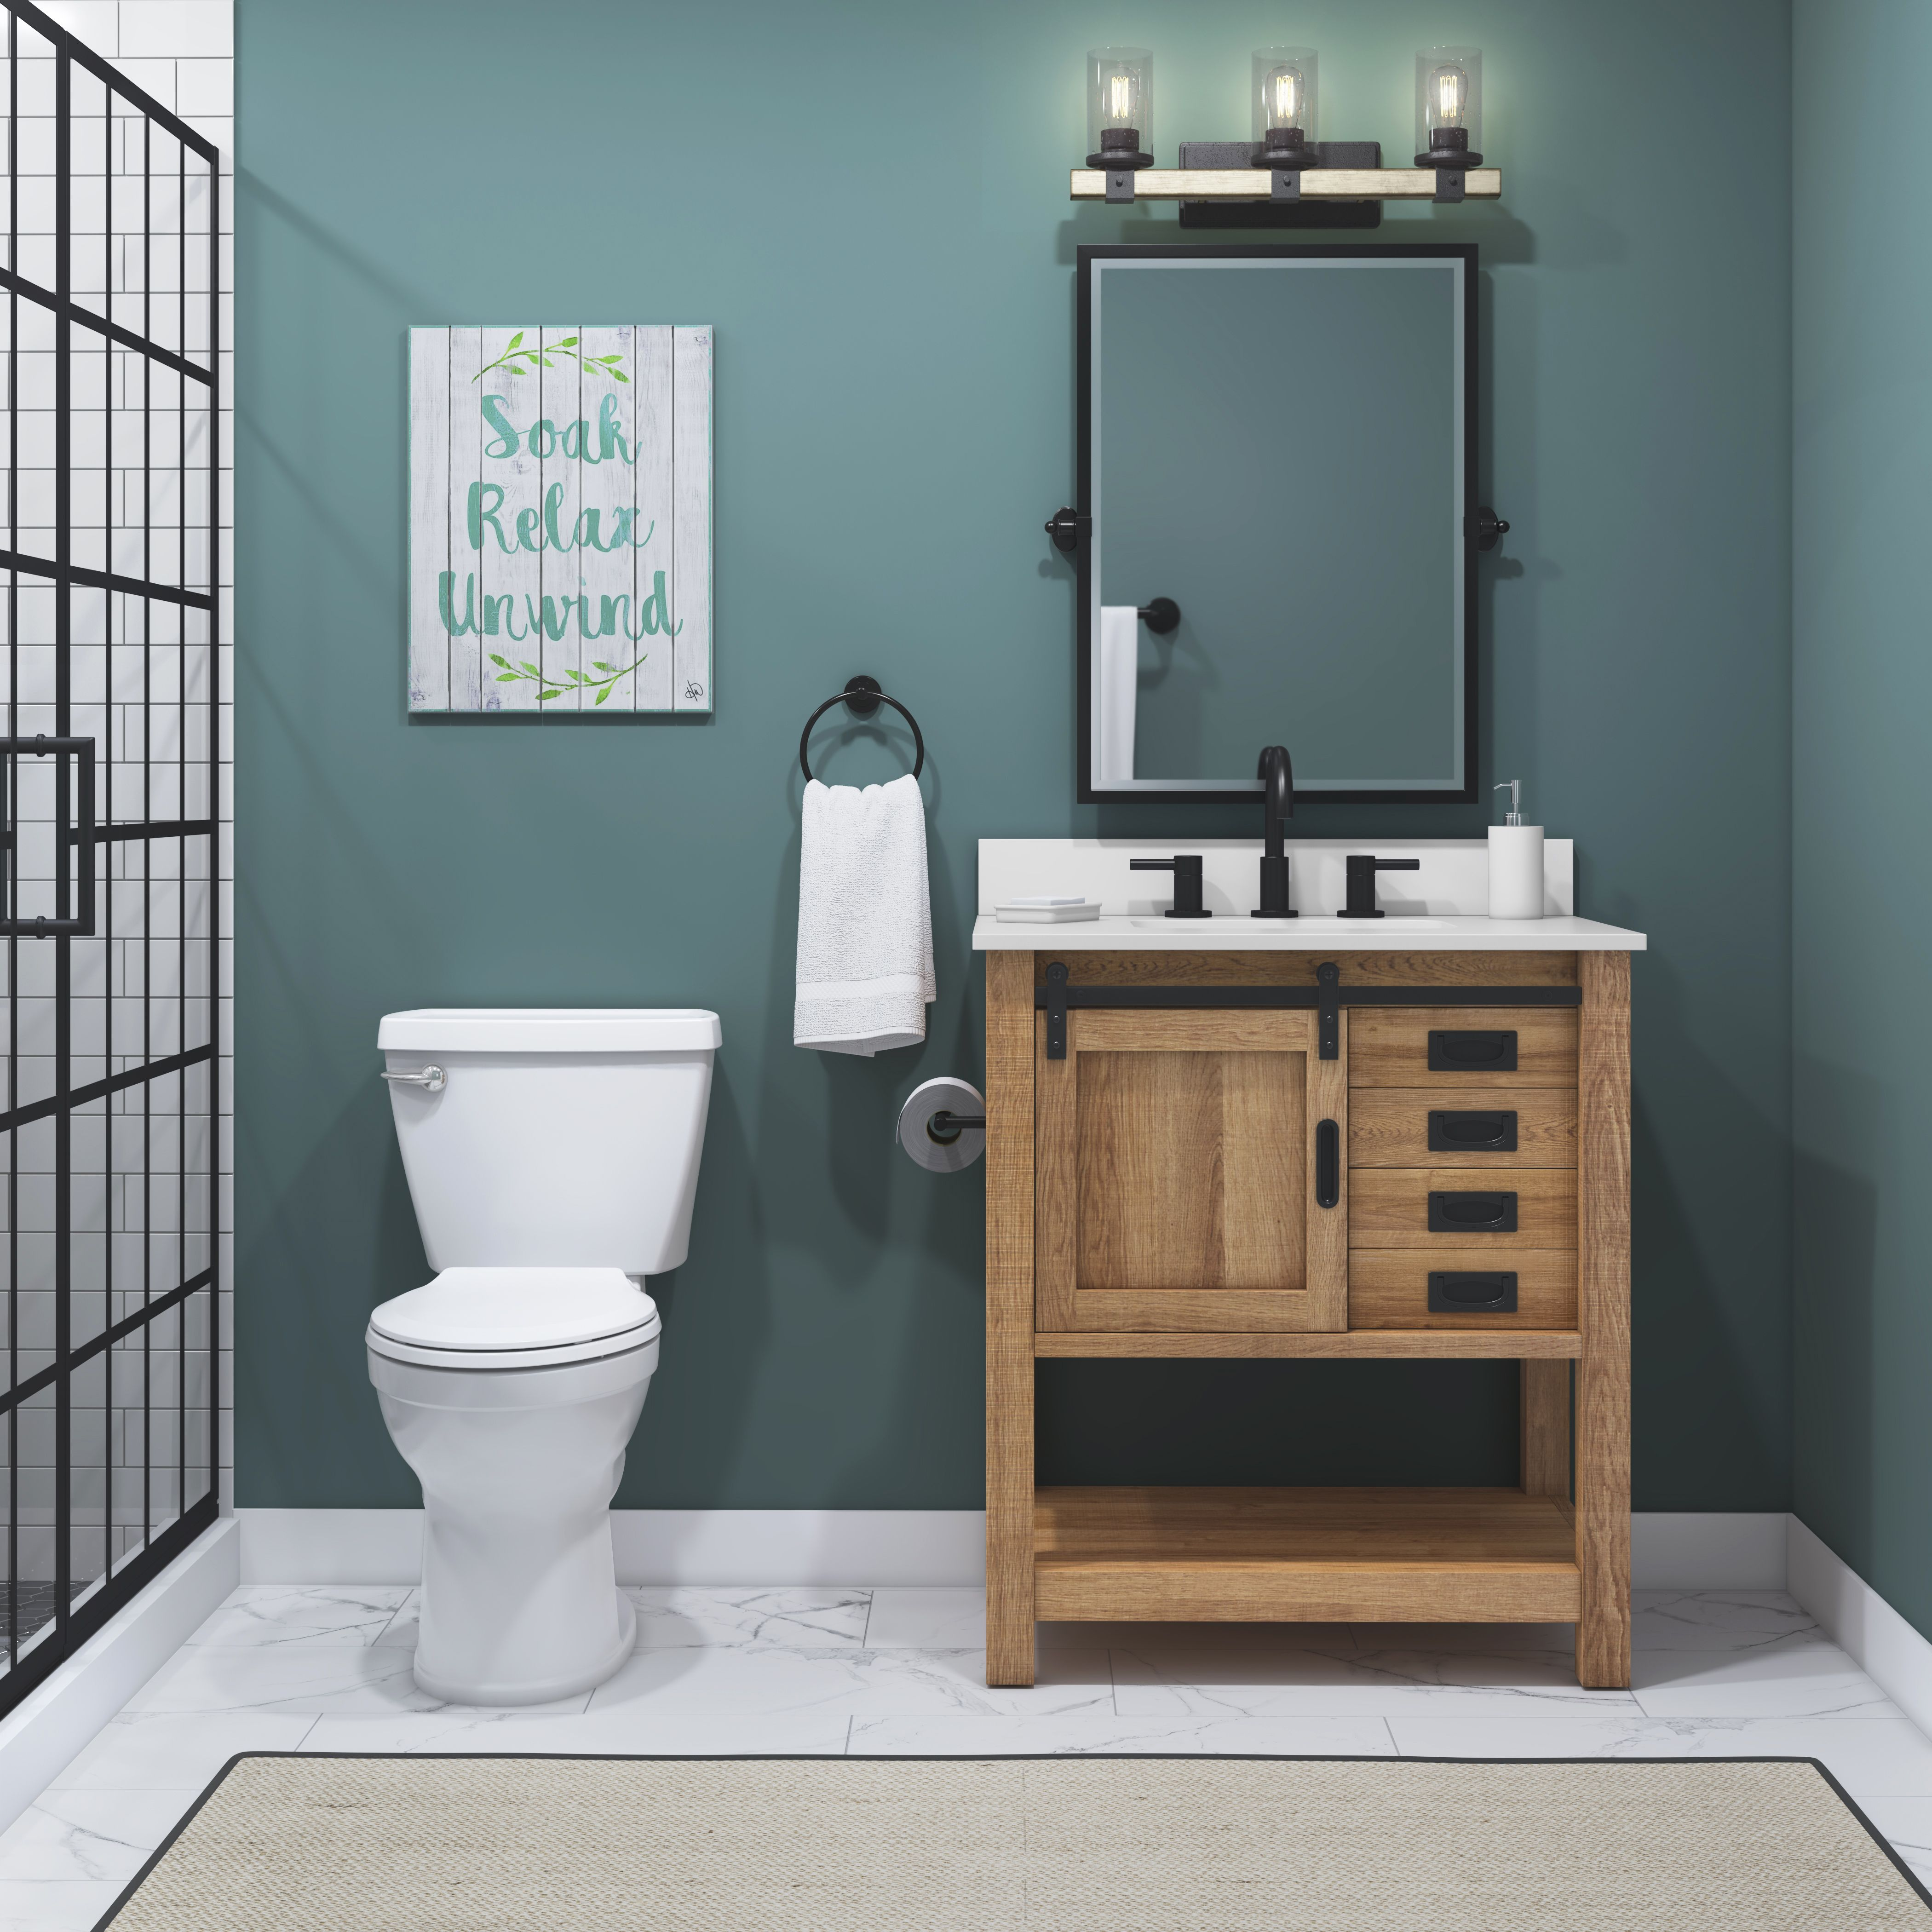 Get inspired and shop incredible deals at the Lowe's